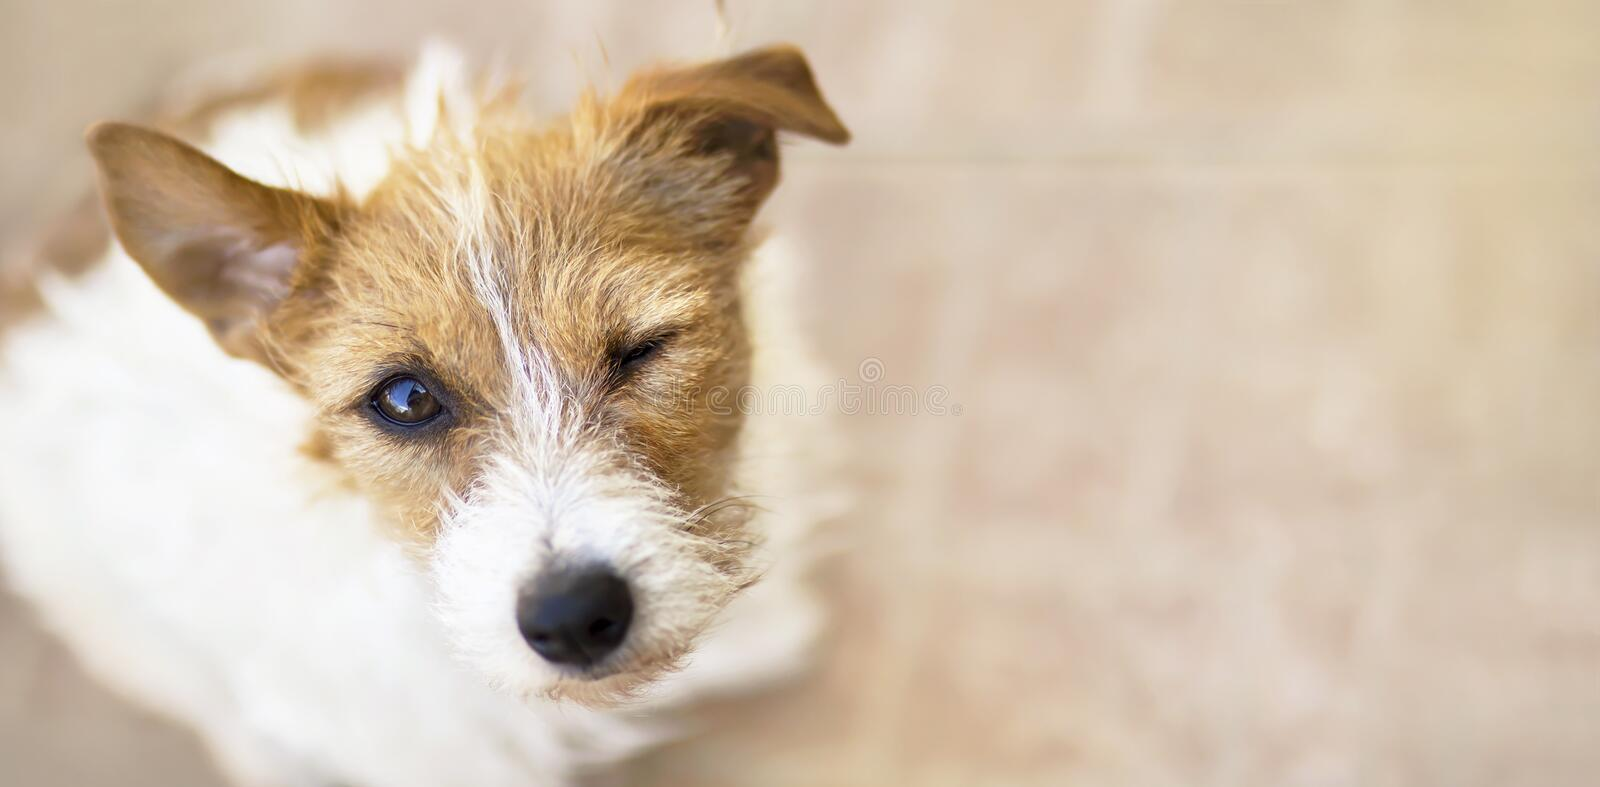 Winking dog with funny ears as listening, web banner stock image